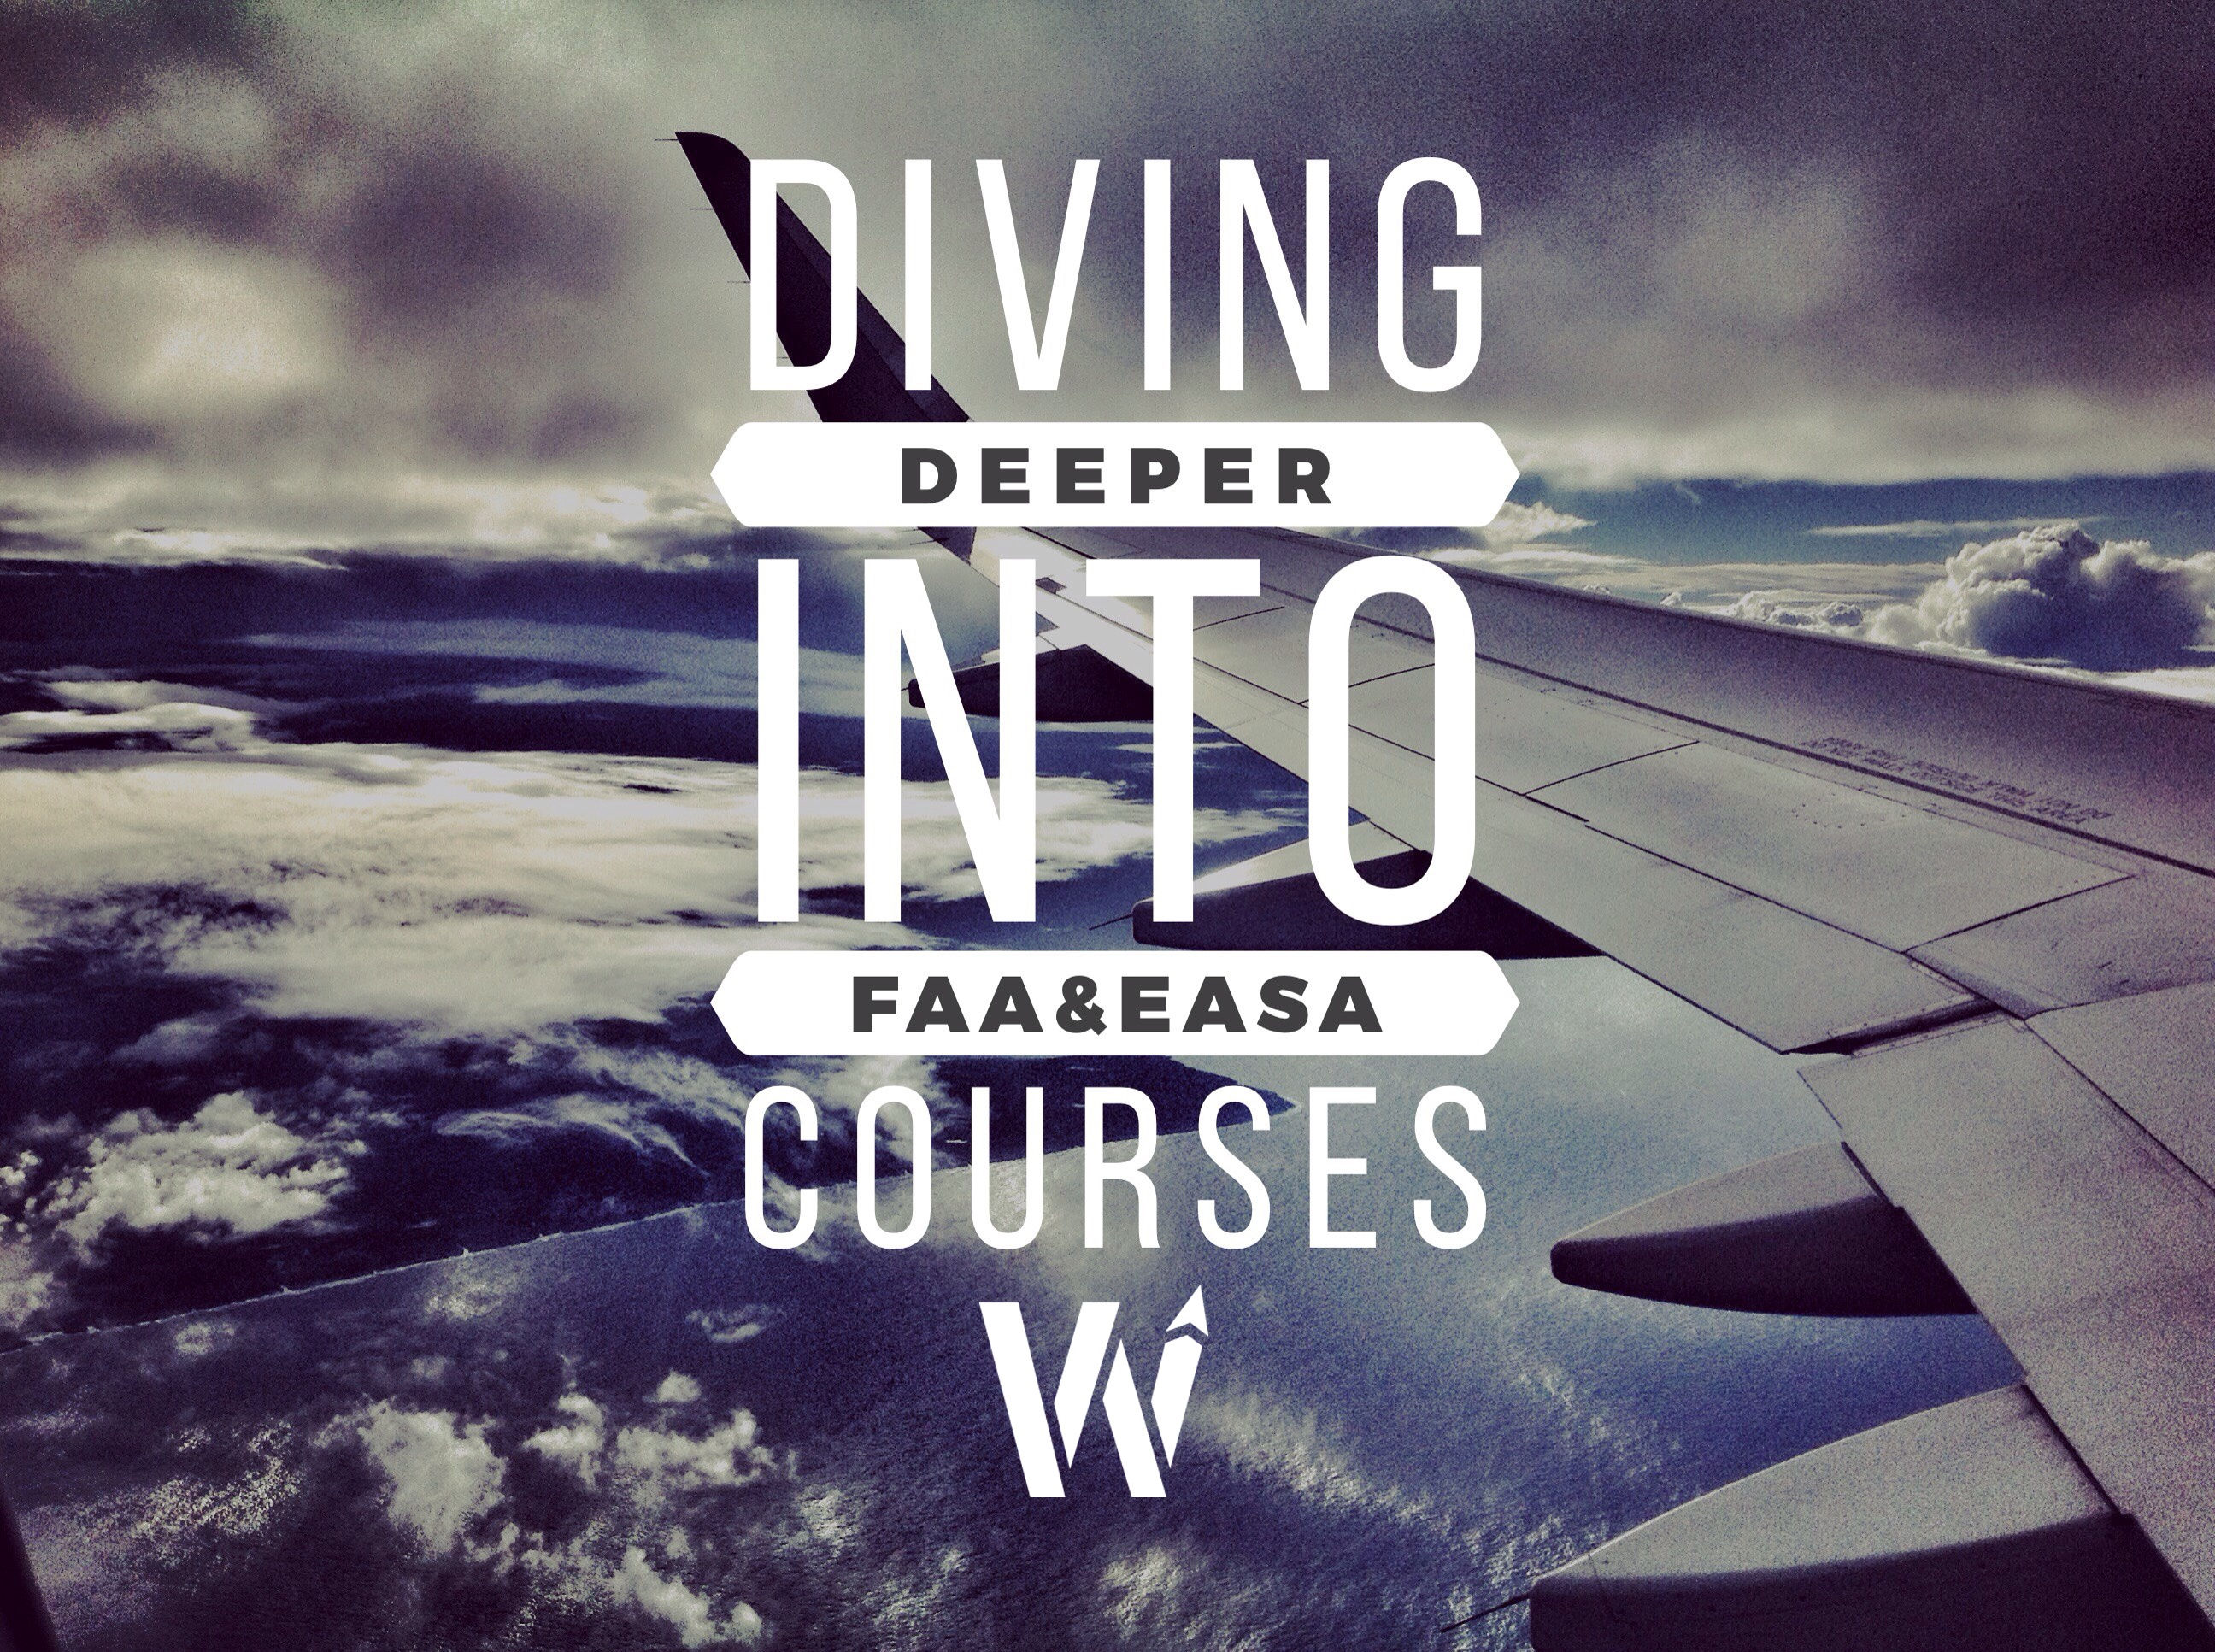 Diving_deeper_into_faa_en_easa_courses.jpg